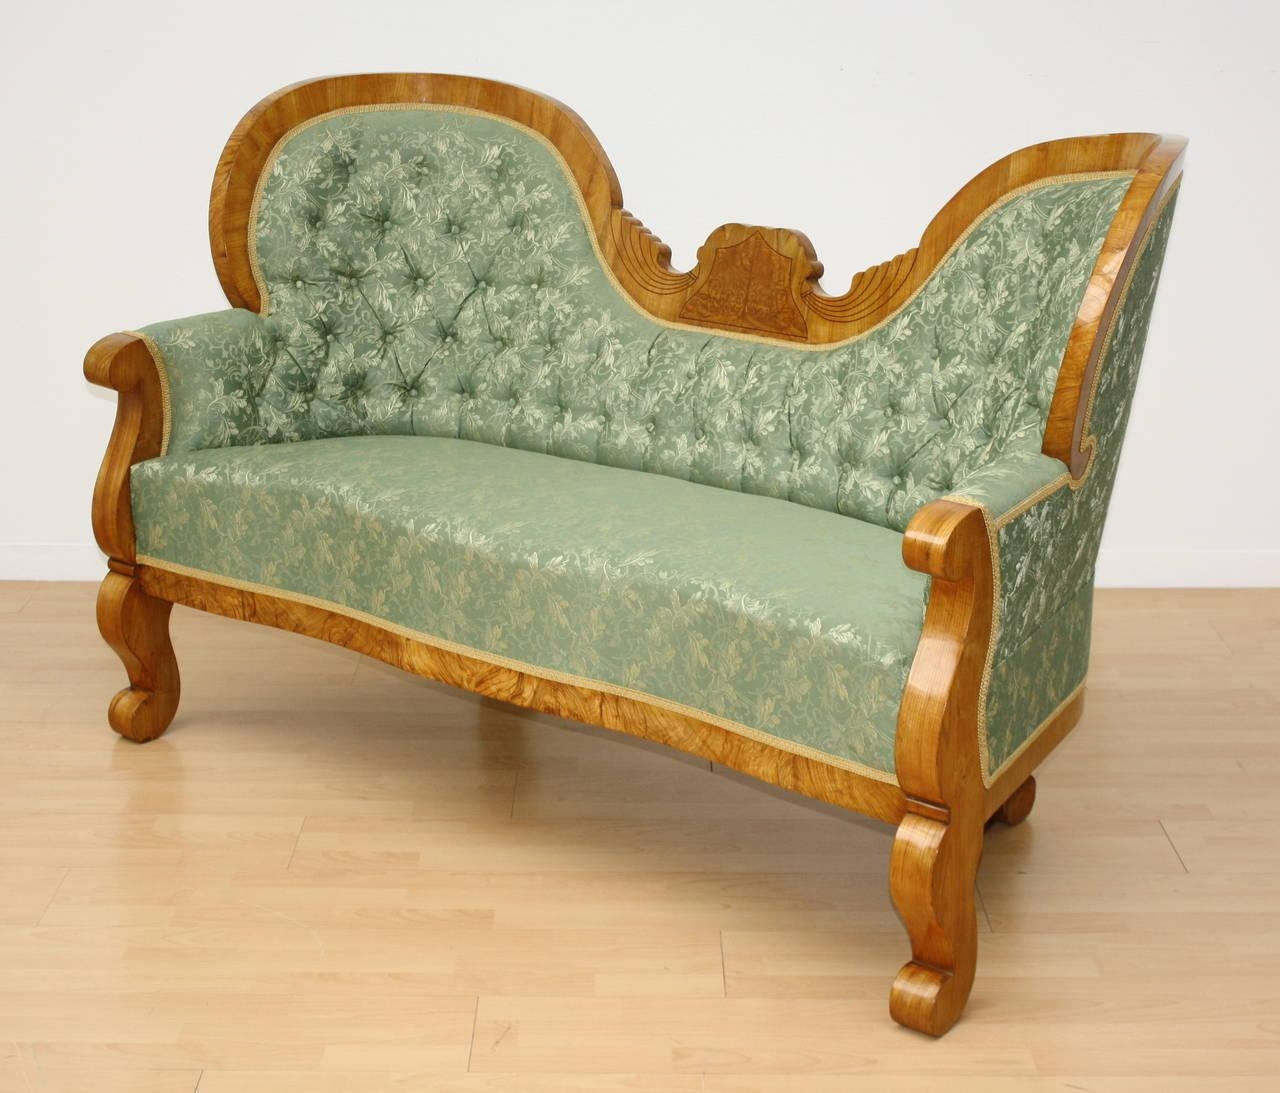 19Th Century Austrian Biedermeier Sofa For Sale At 1Stdibs Intended For Biedermeier Sofas (View 20 of 20)